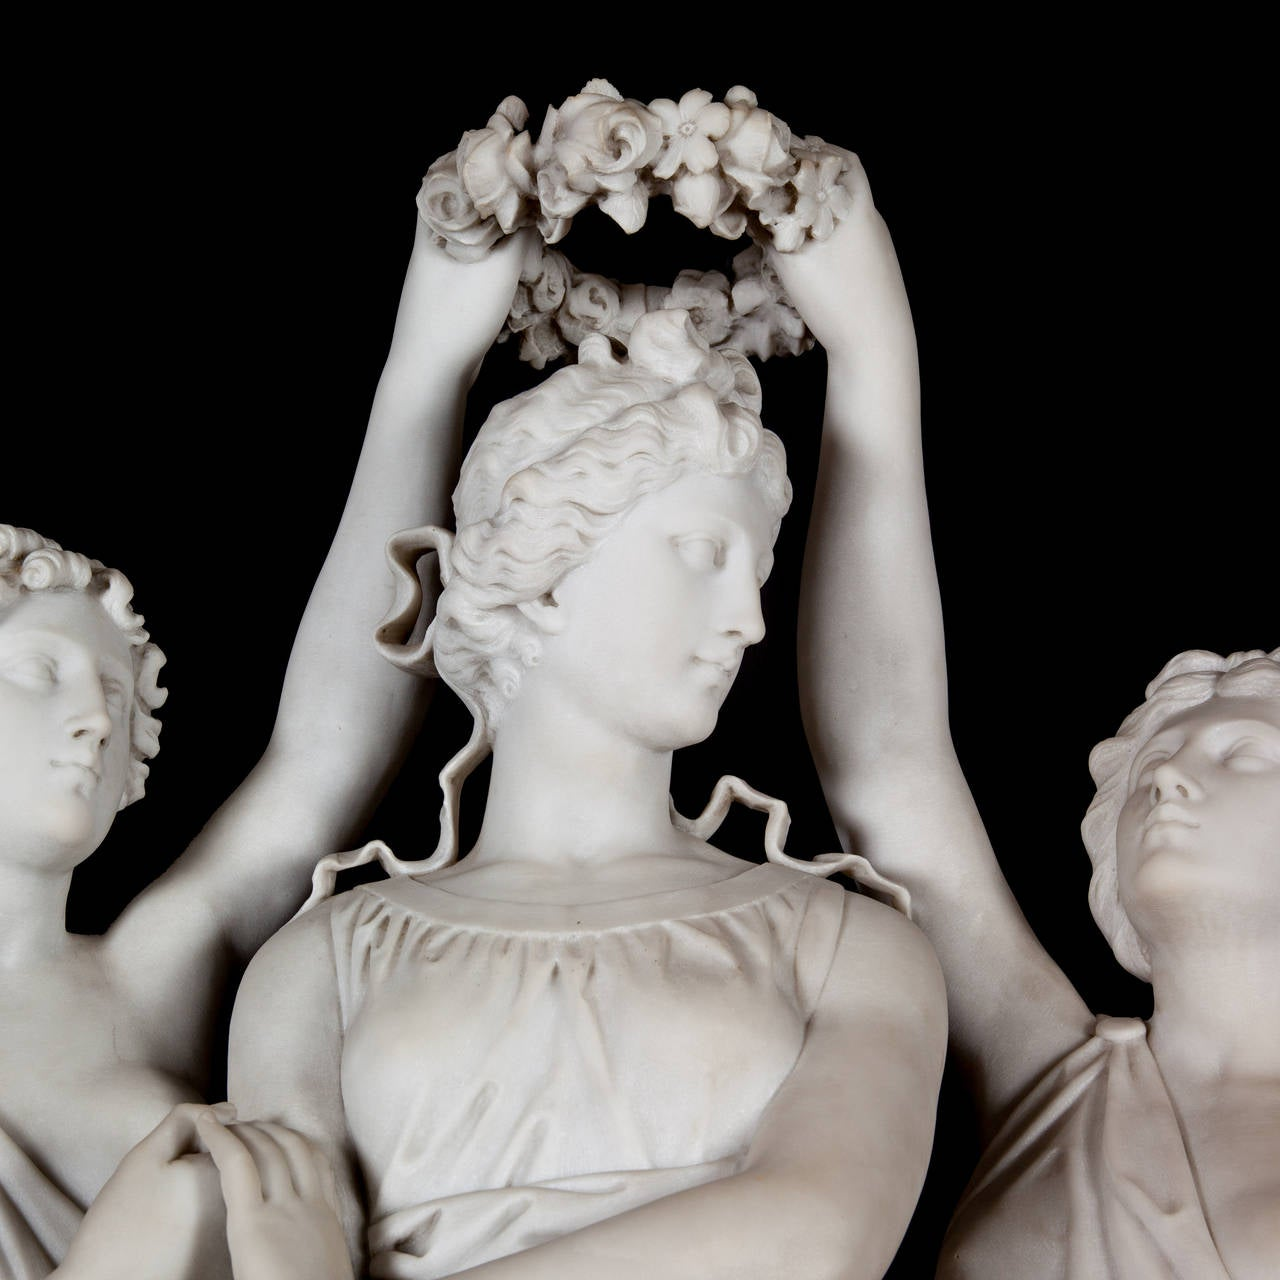 Italian Marble Sculpture of the Three Graces Crowning Venus by Antonio Frilli